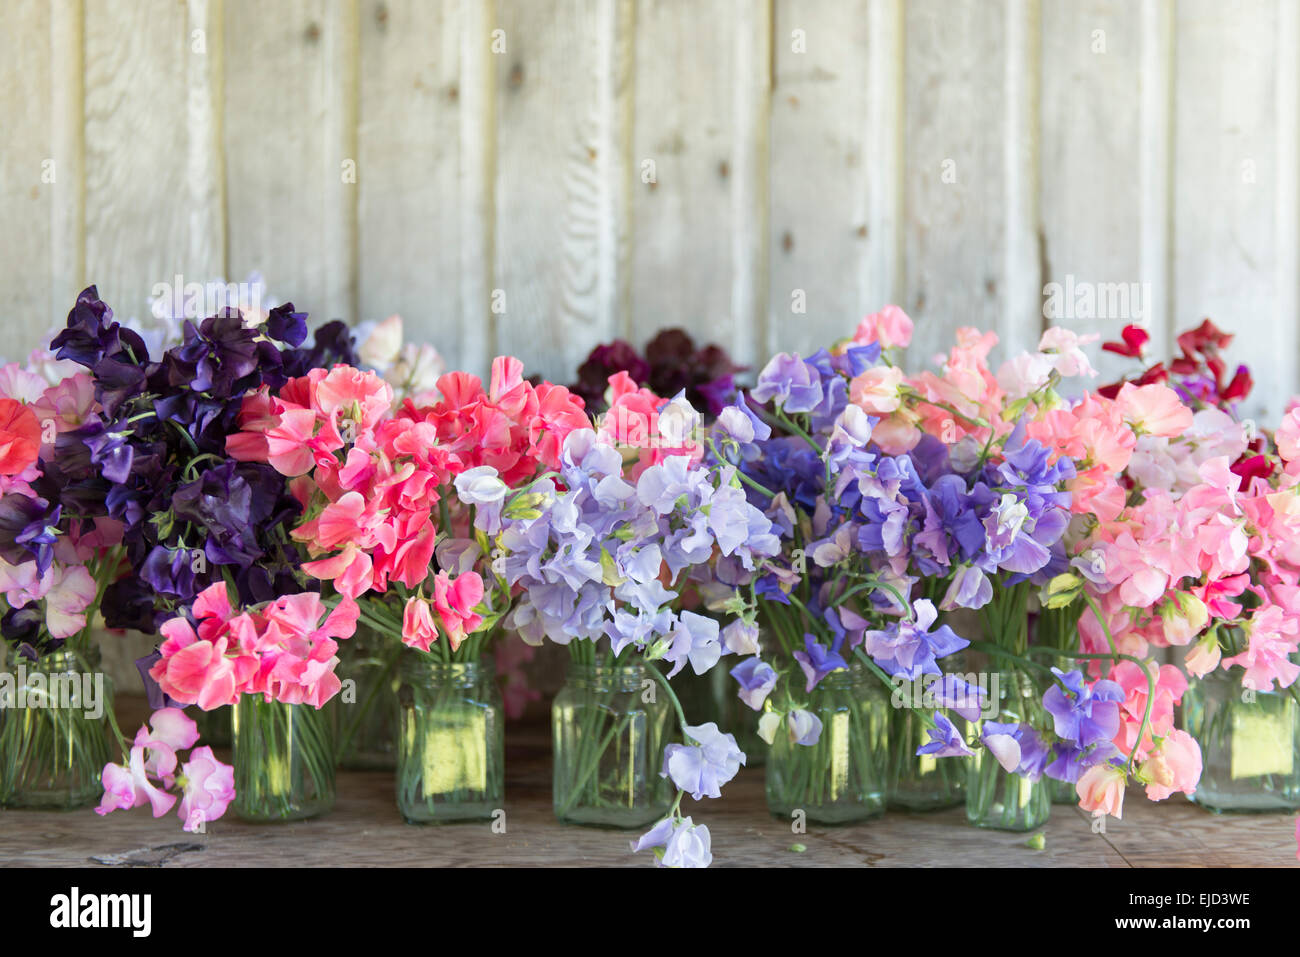 Mixed sweet peas in jars on rustic table - Stock Image